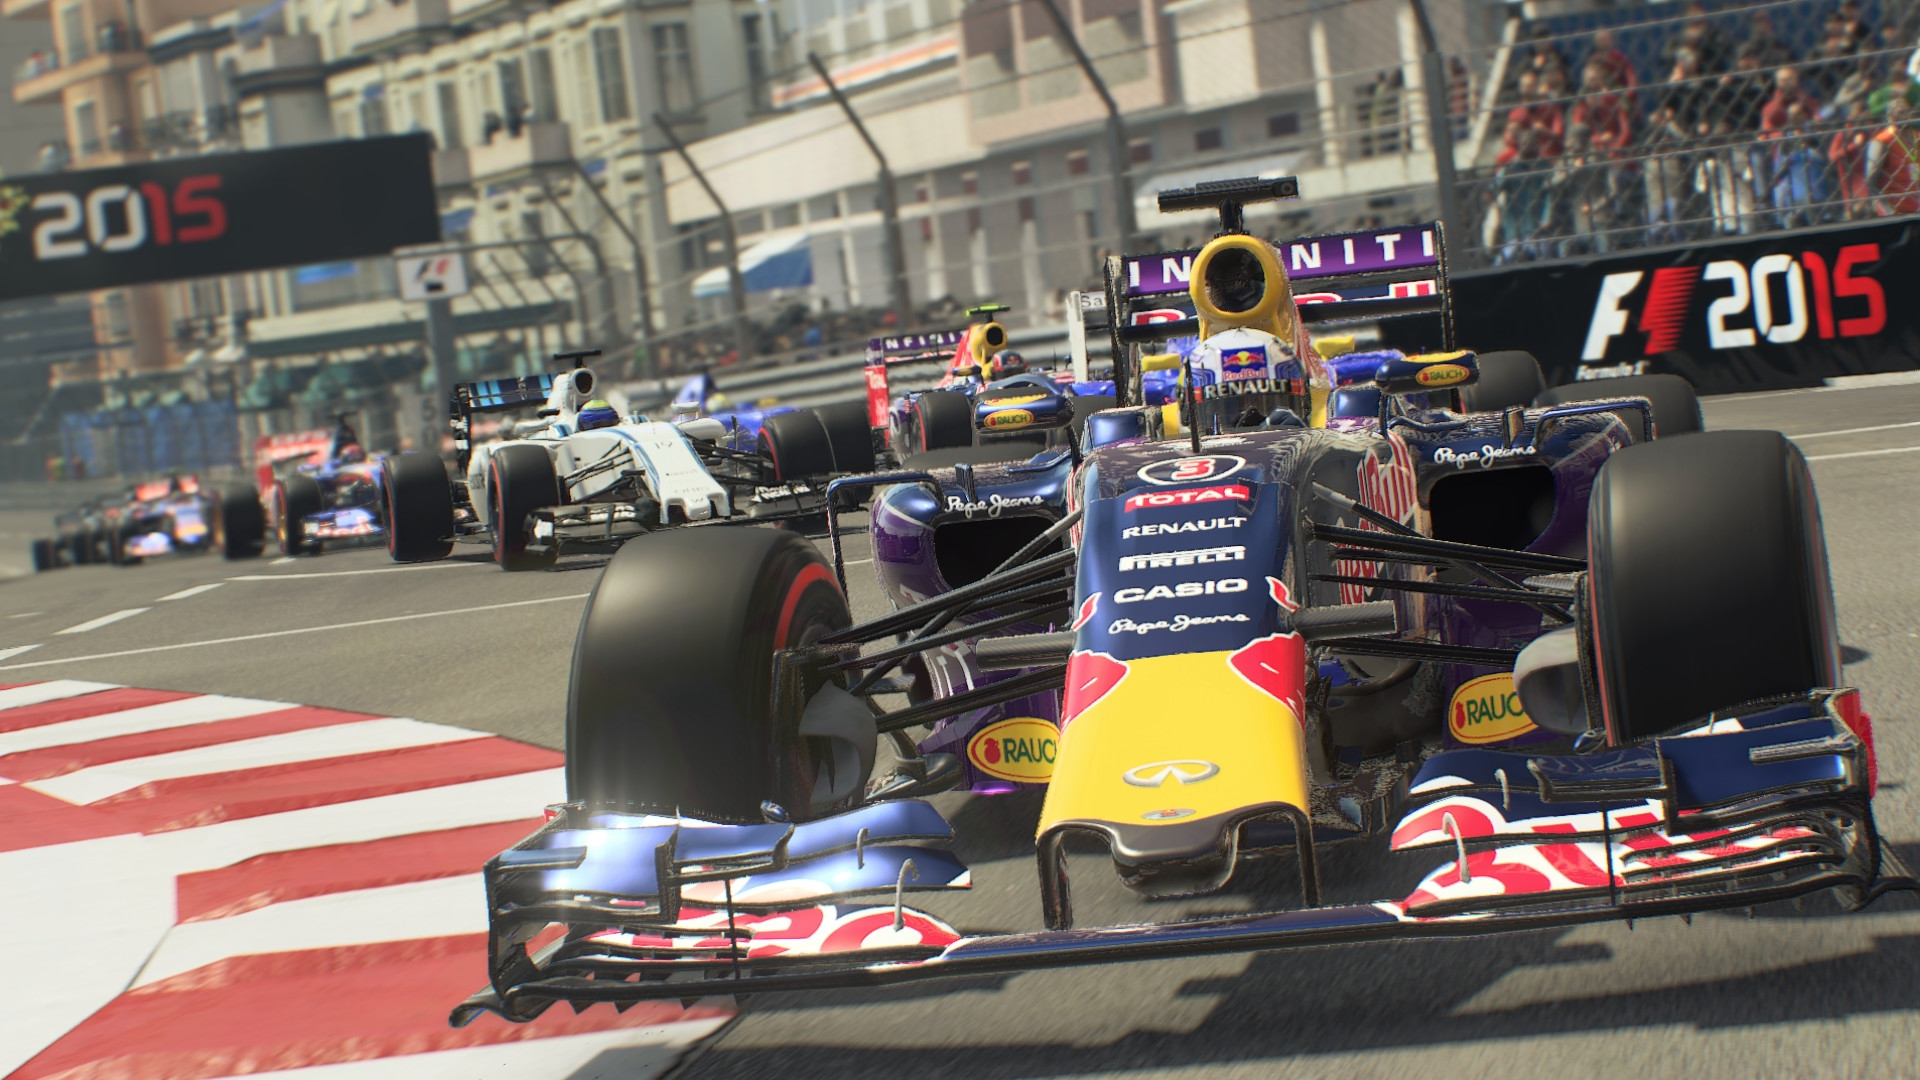 F1 2015 [Steam\RegionFree\Key] + Gift